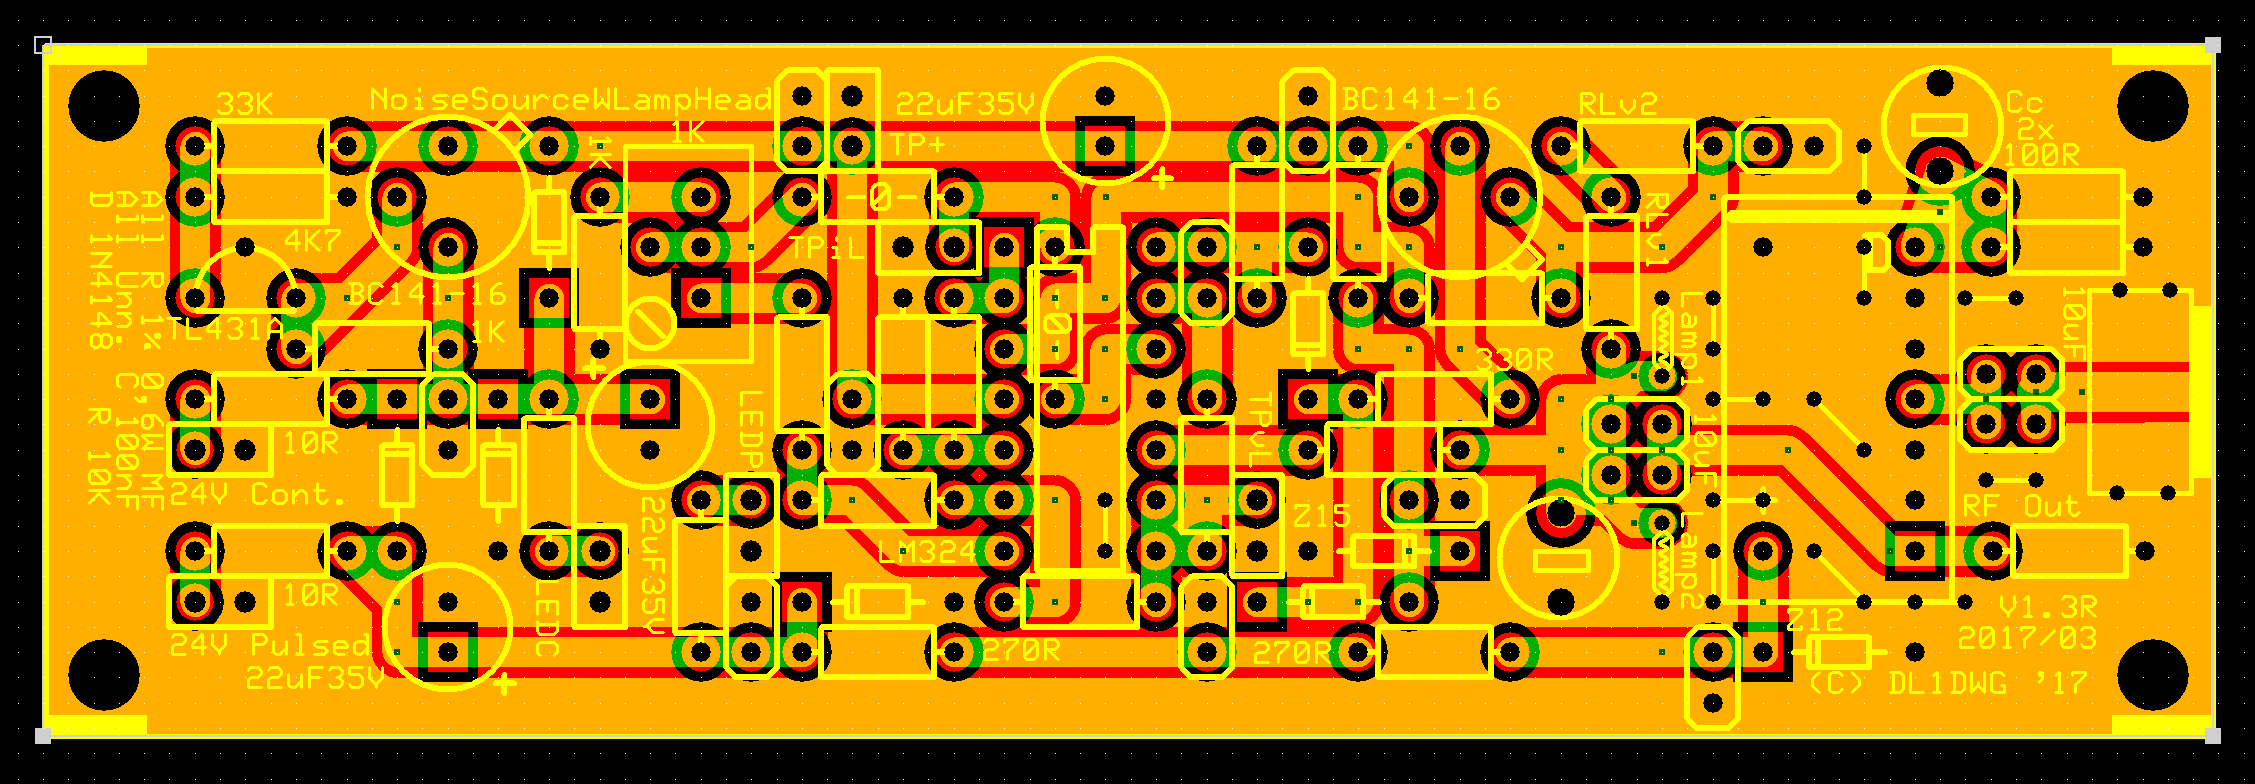 A Lamp Noise Head Electronic Projects For Fun High Power Rf Relay Switch Apart From The Circuit In Diagram Pcb Also Accommodates Voltage Regulator An Switching Between 50ohms Termination Resistor And